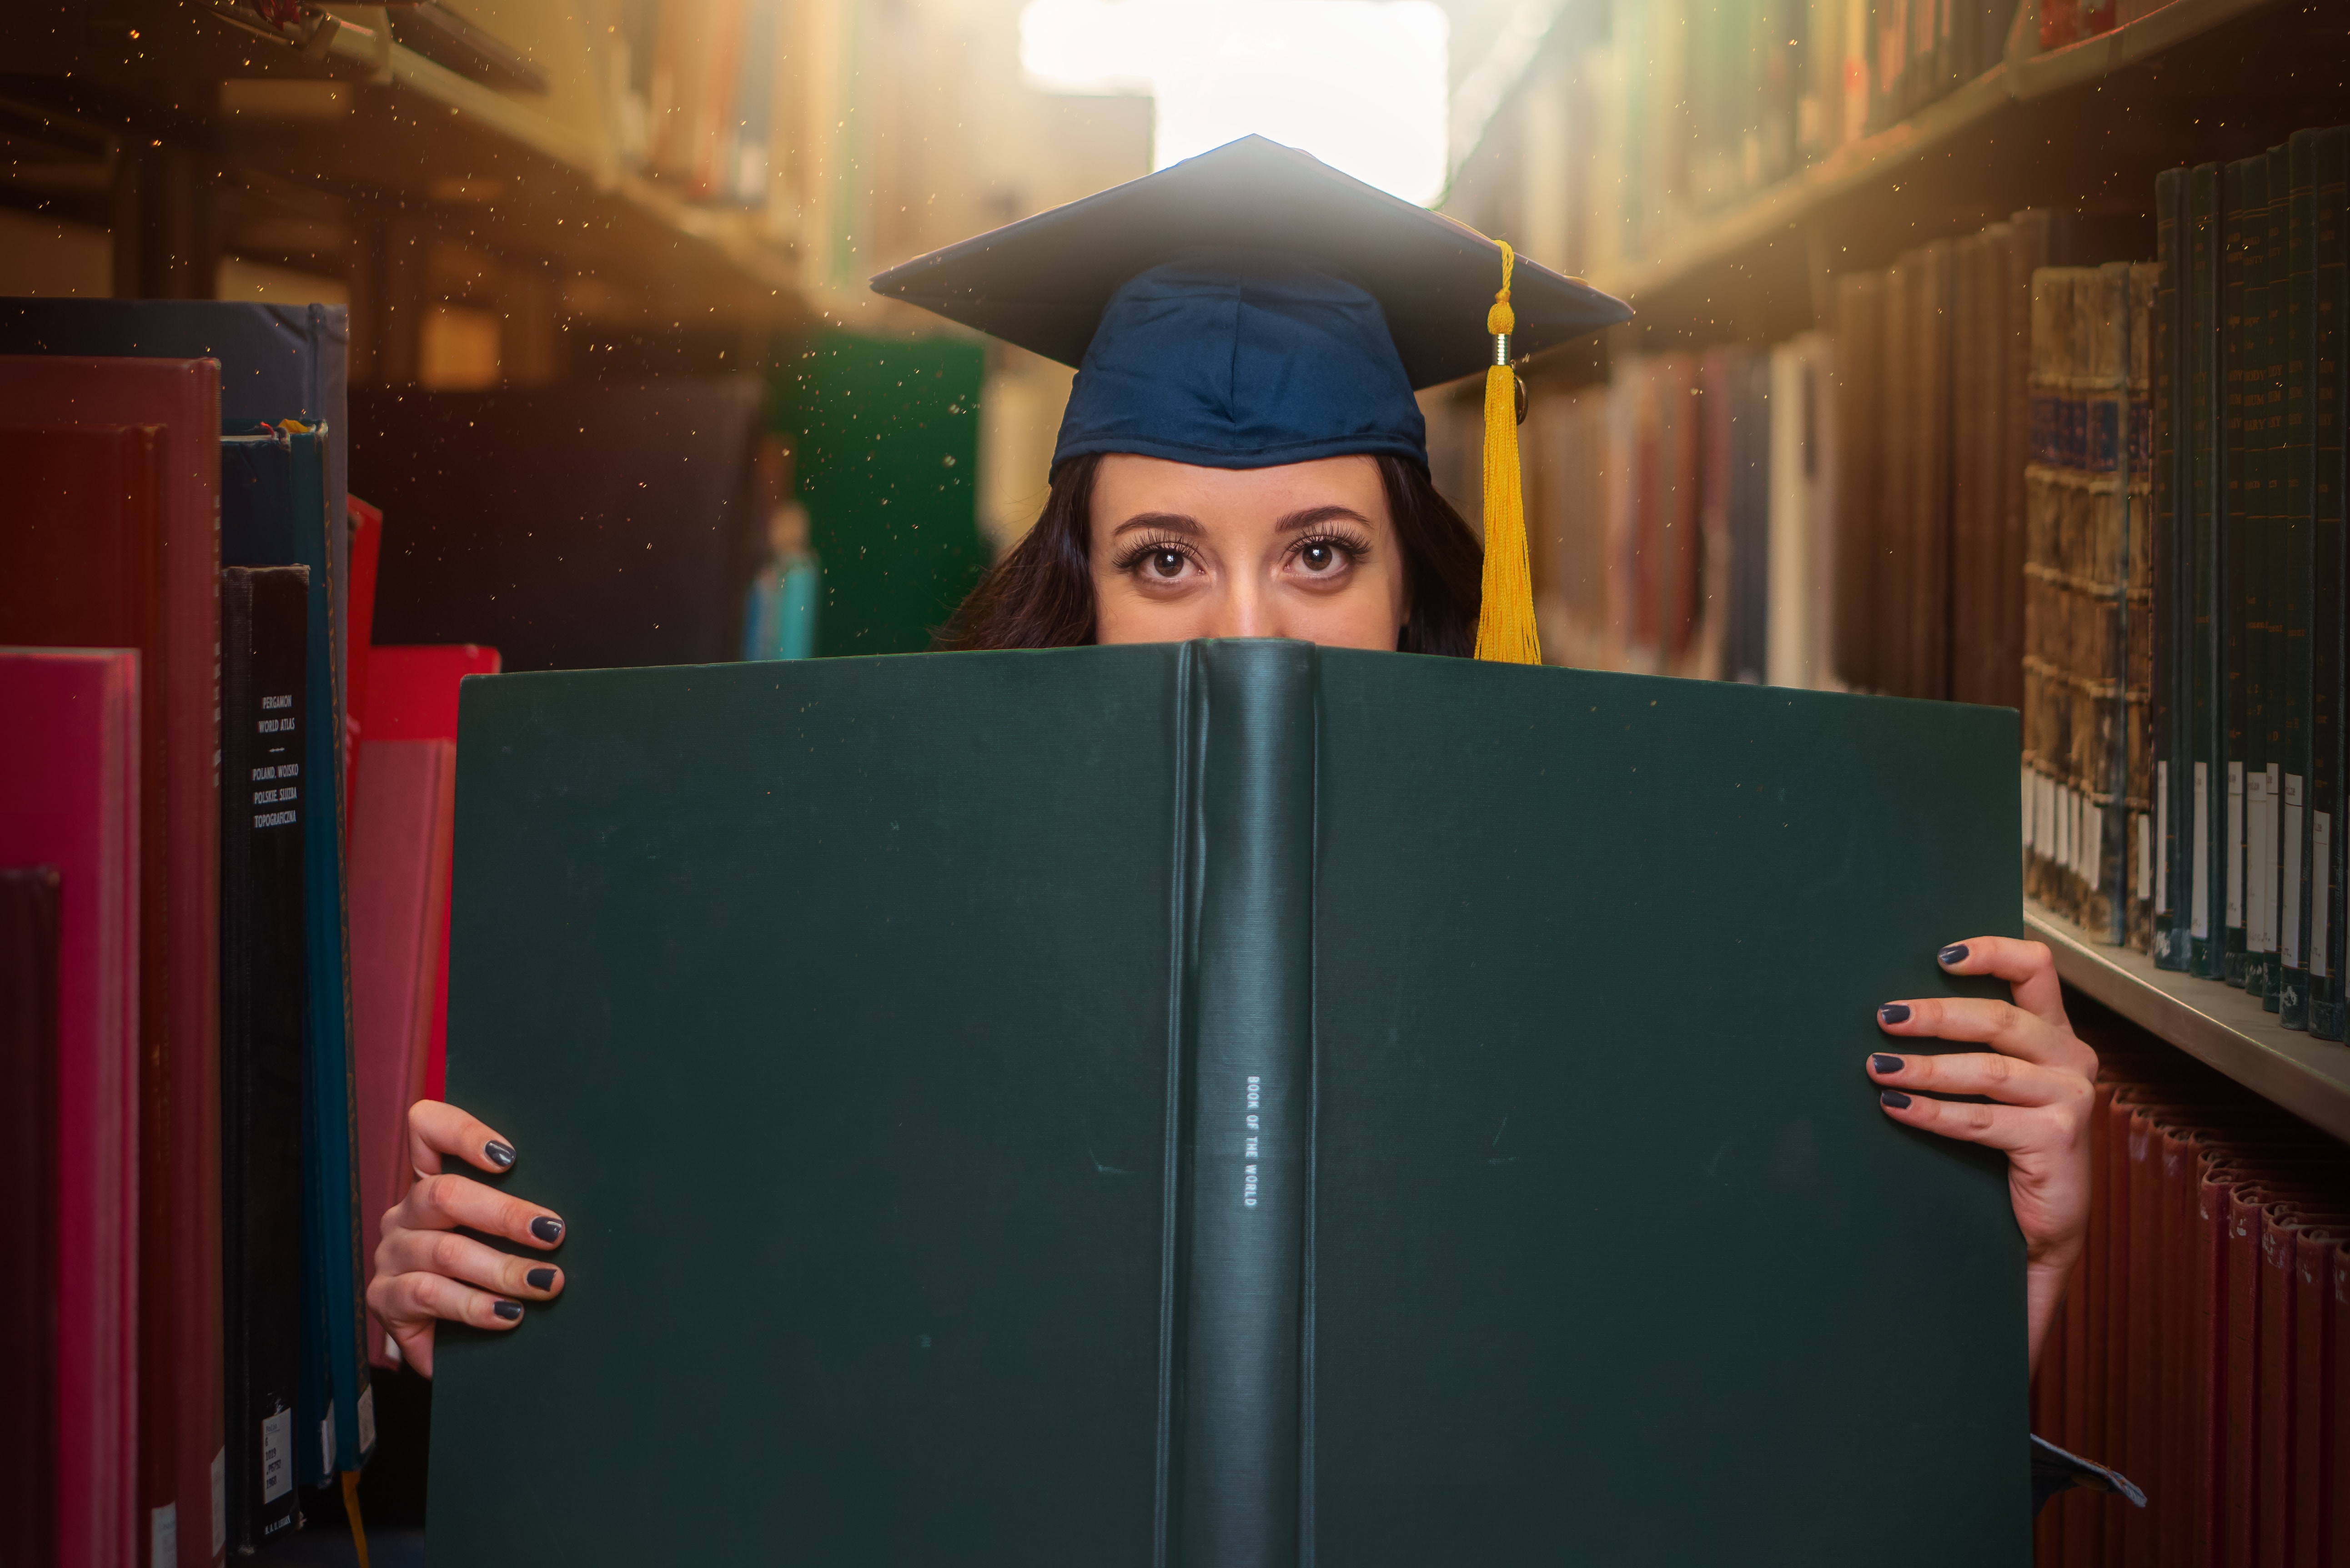 5 Things Every High Schooler Should Do Before Graduation